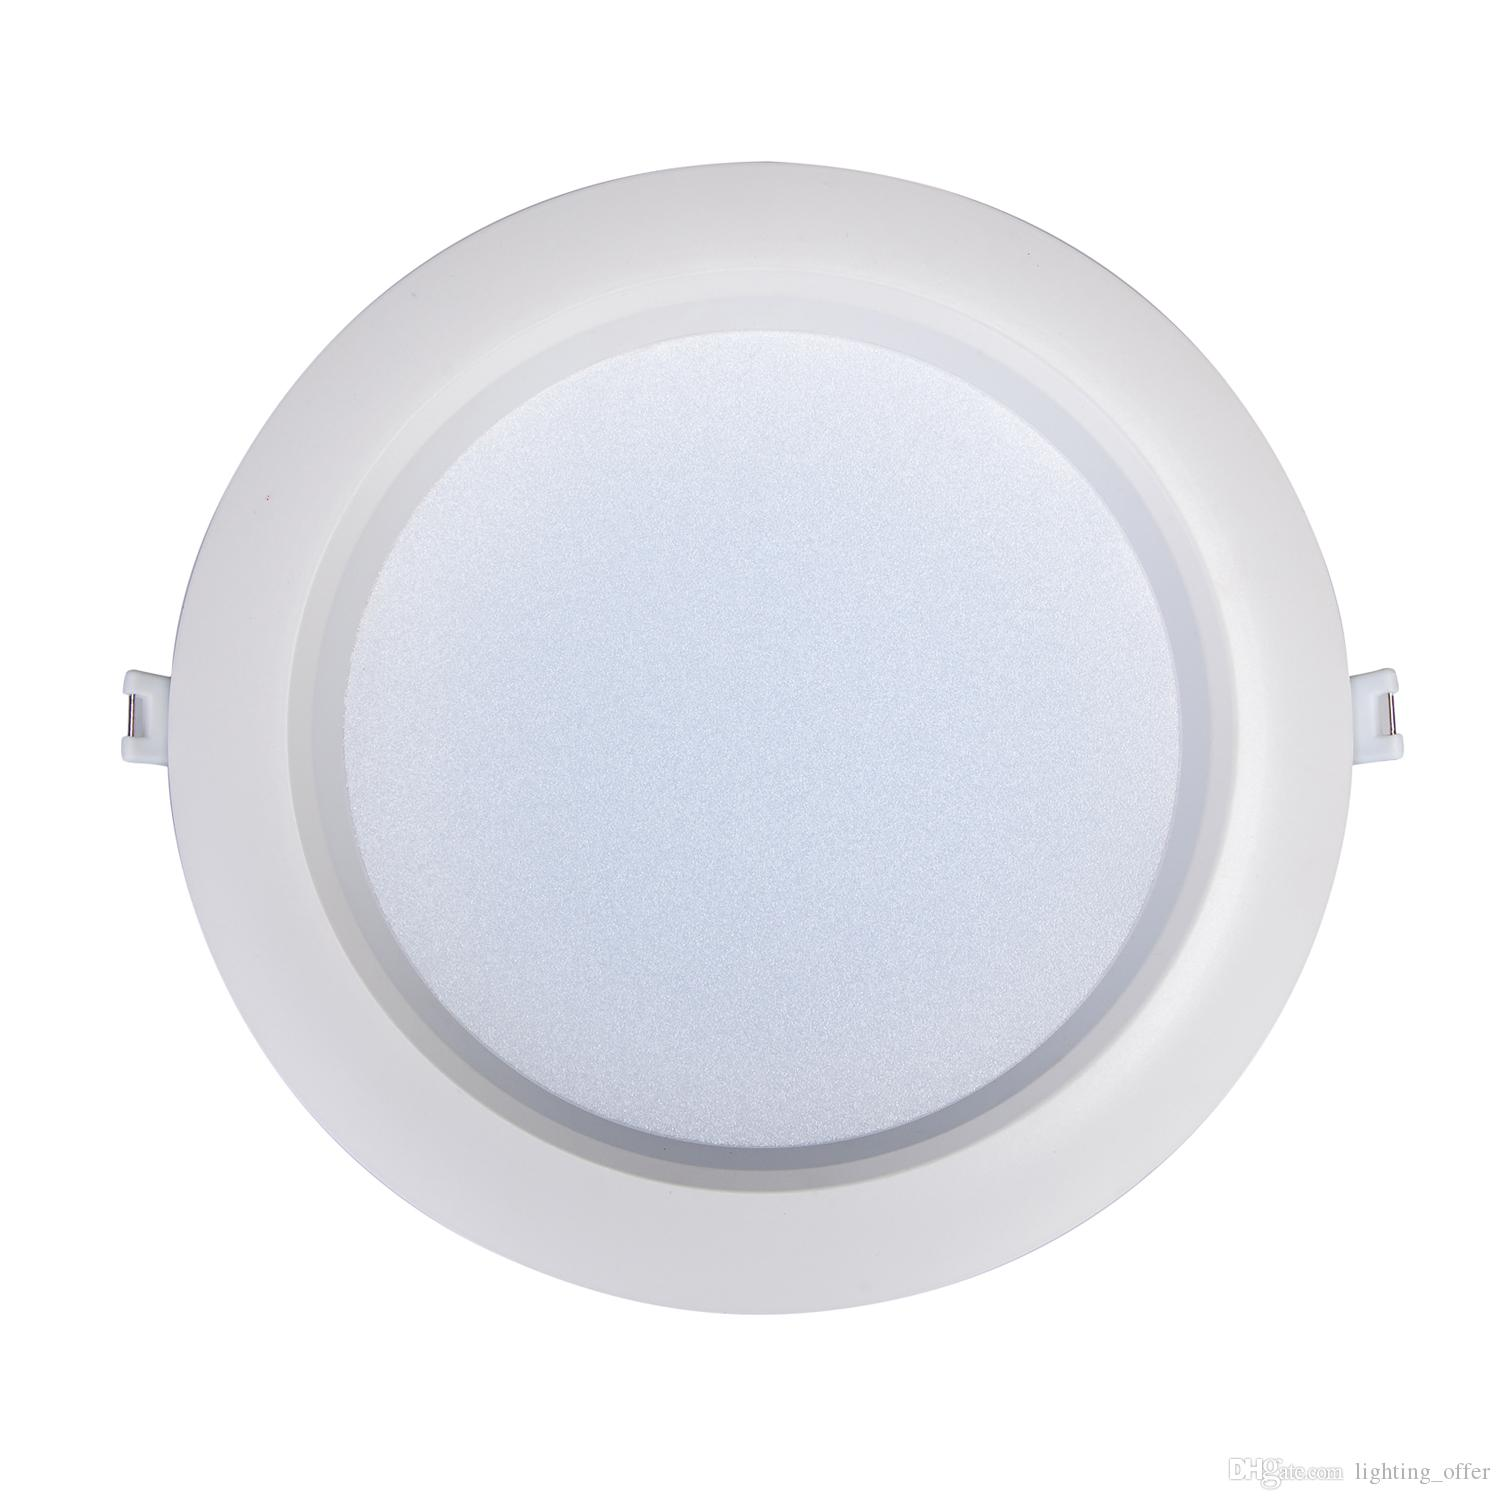 24 watt round led ceiling light recessed kitchen bathroom lamp 110v